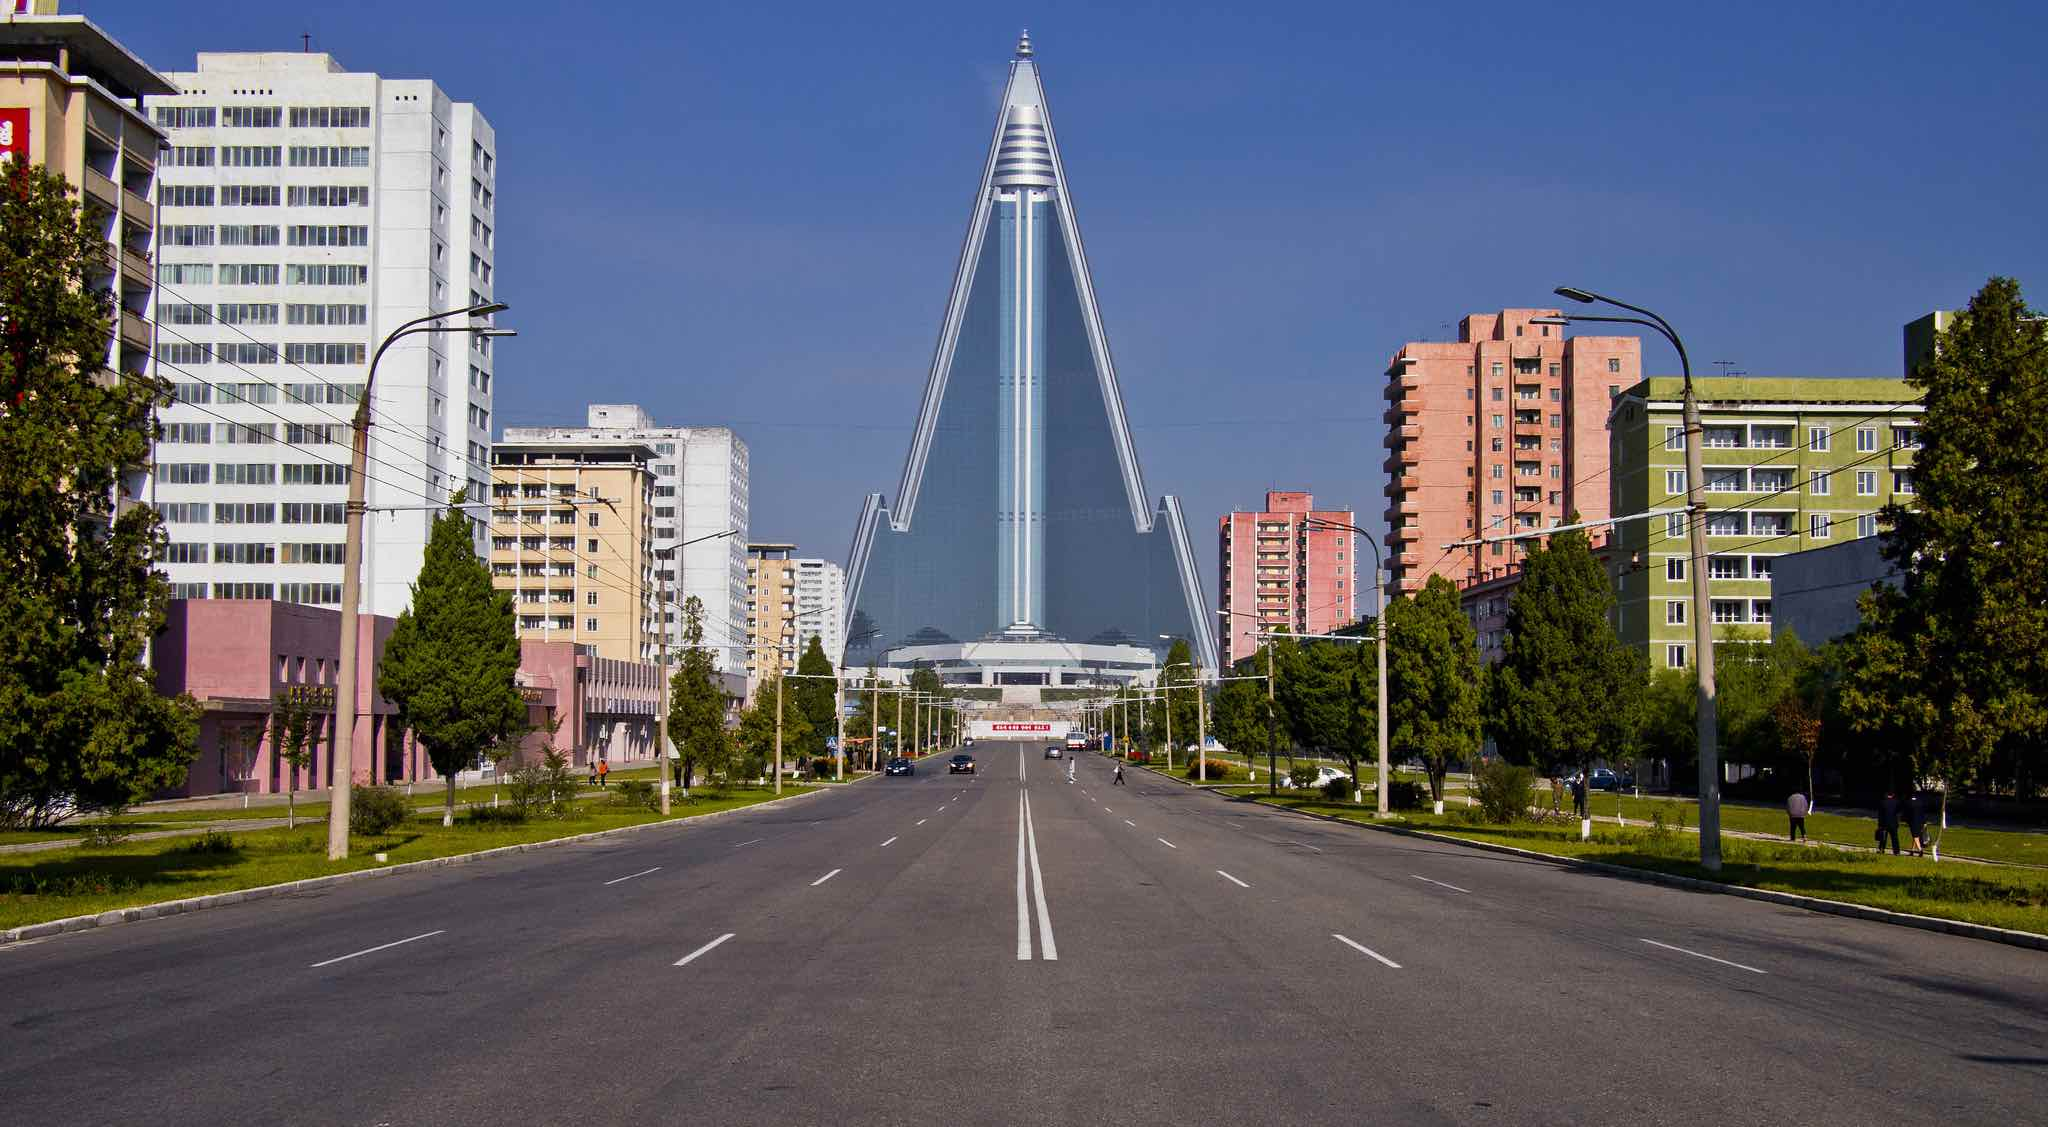 The Ryugyong Hotel in Pyongyang (Photo: Marcelo Druck/Flickr)